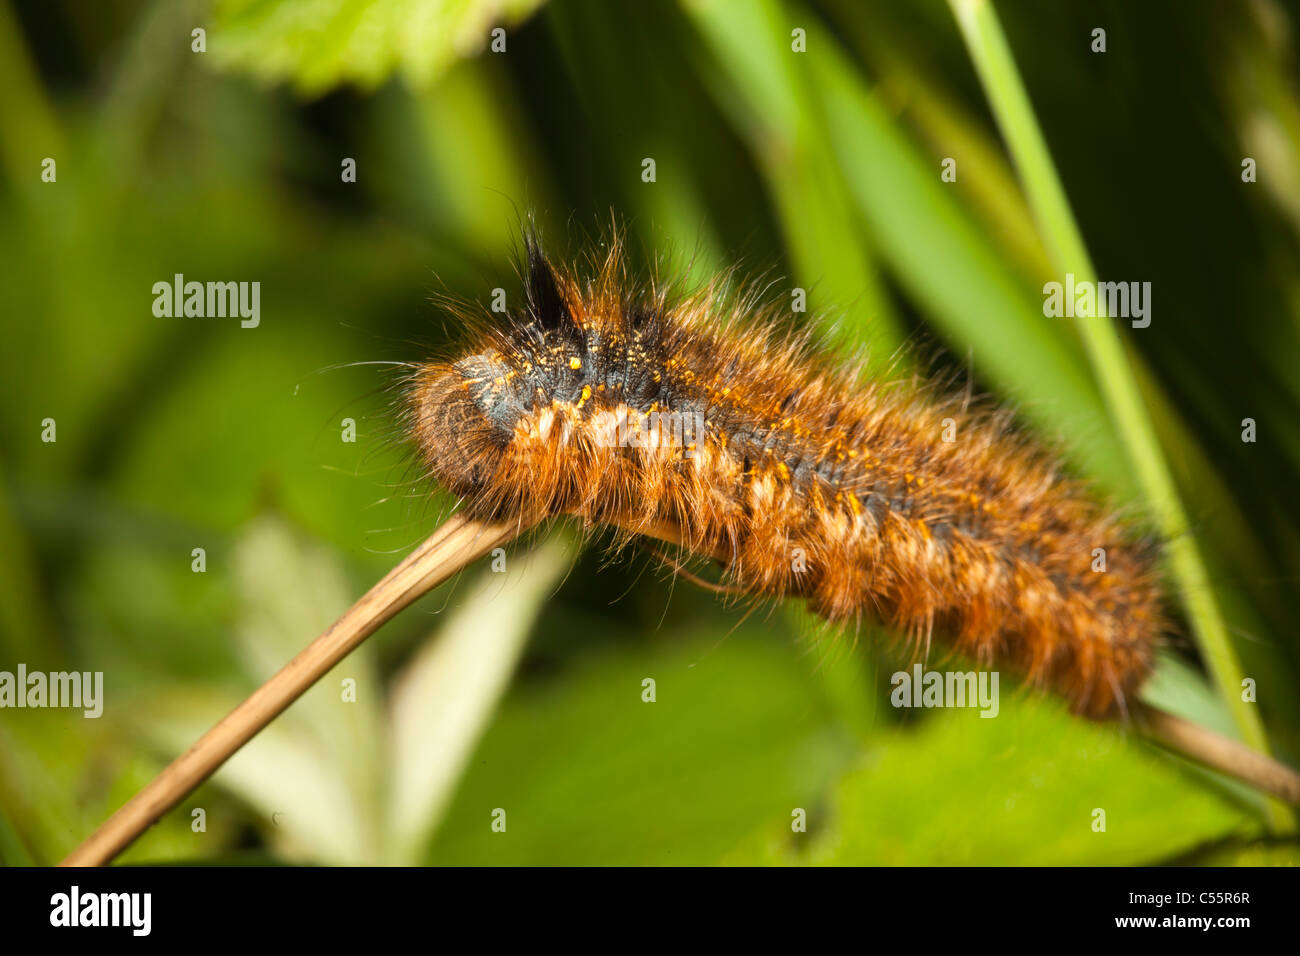 The Netherlands, Loon op Zand, National Park De Brand. Catterpillar. - Stock Image